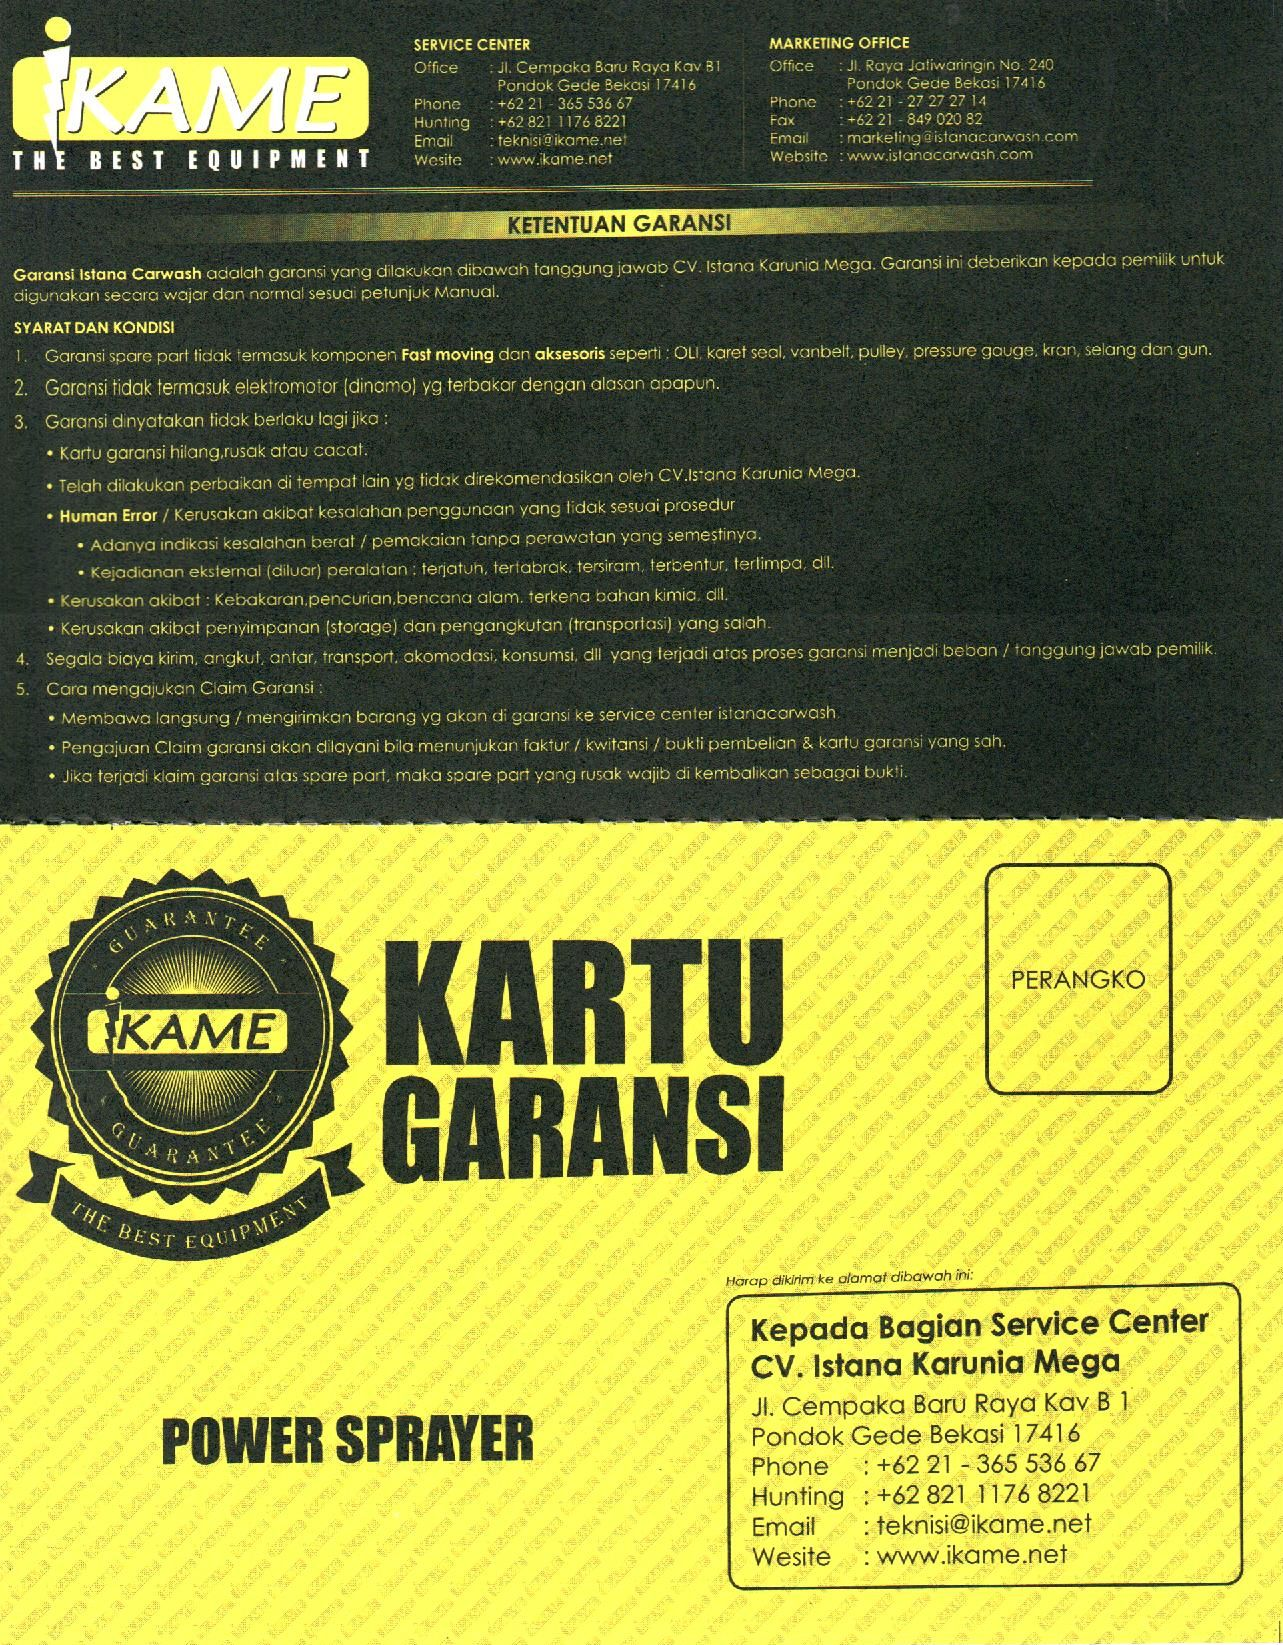 kartu garansi power sprayer depan MESIN STEAM AIR